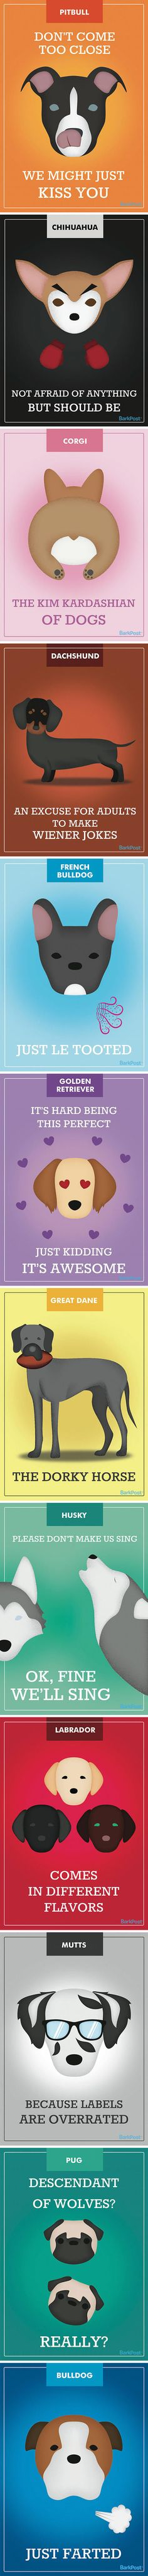 12 Honest Dog Breed Slogans That Make Fun Of Stereotypes